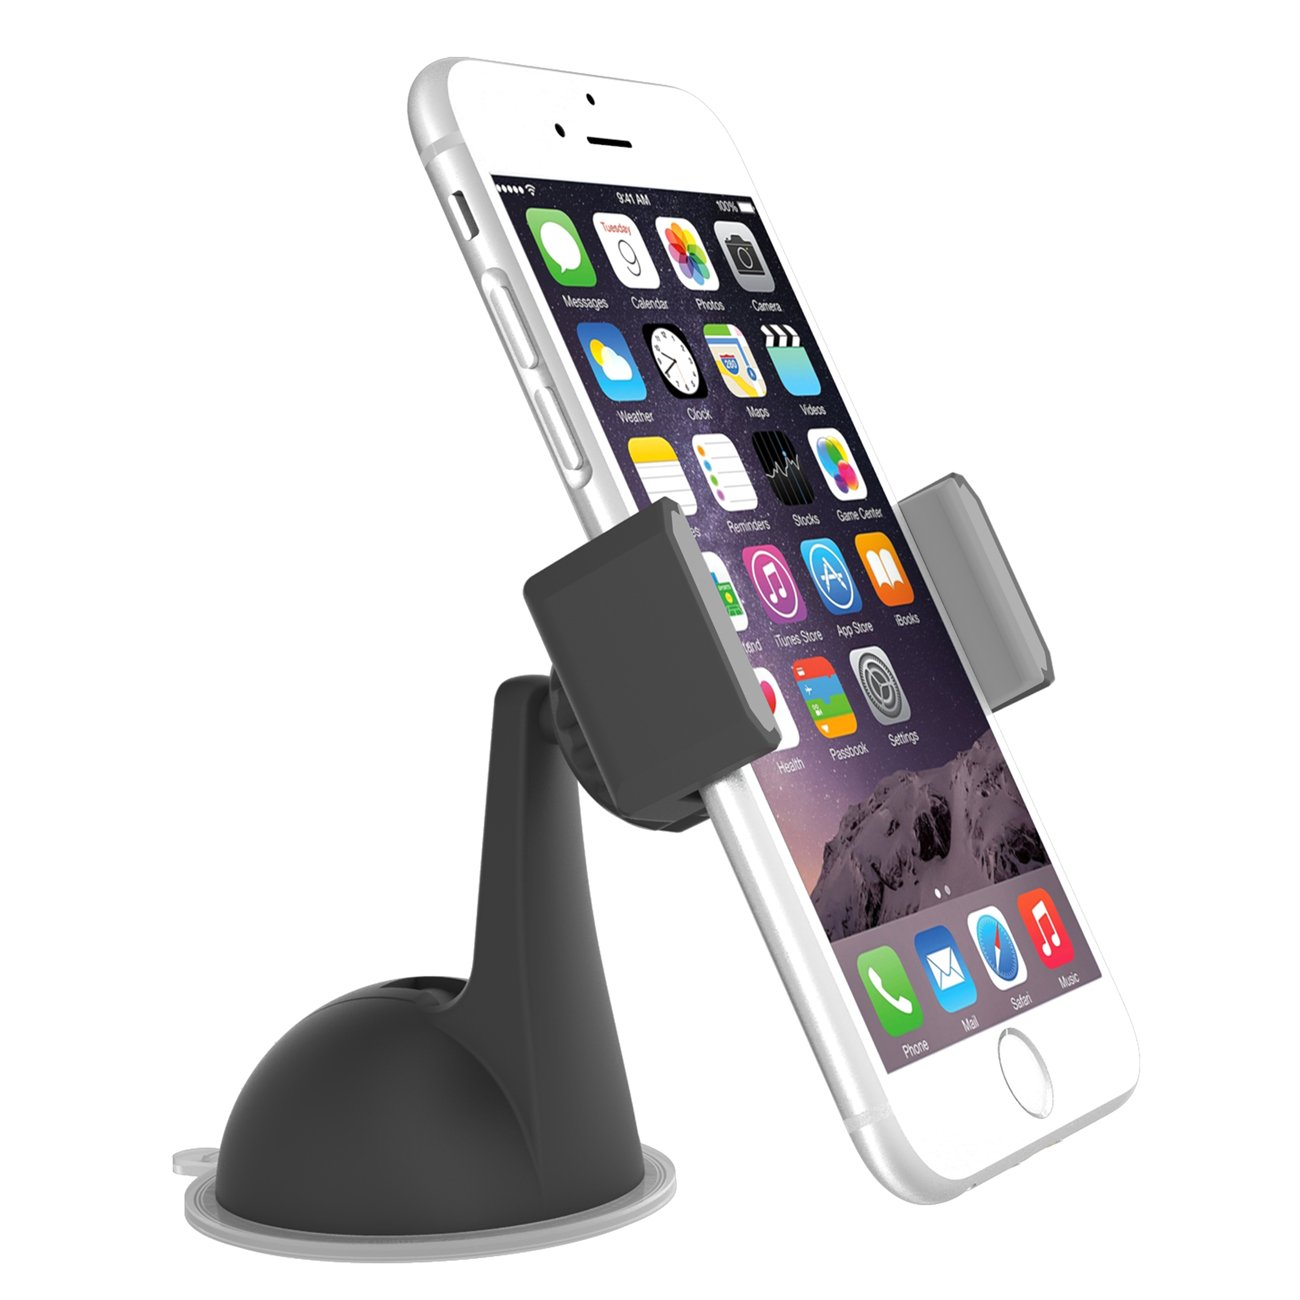 Compatible with Most Smartphones /& Mini Tablets 360 Degrees Swivel Mount Super Stable Suction Cup Car Mount LAX Gadgets 133 LAX Universal Dashboard-mounted Smart Phone Holder with Non-Slip Grip Bracket